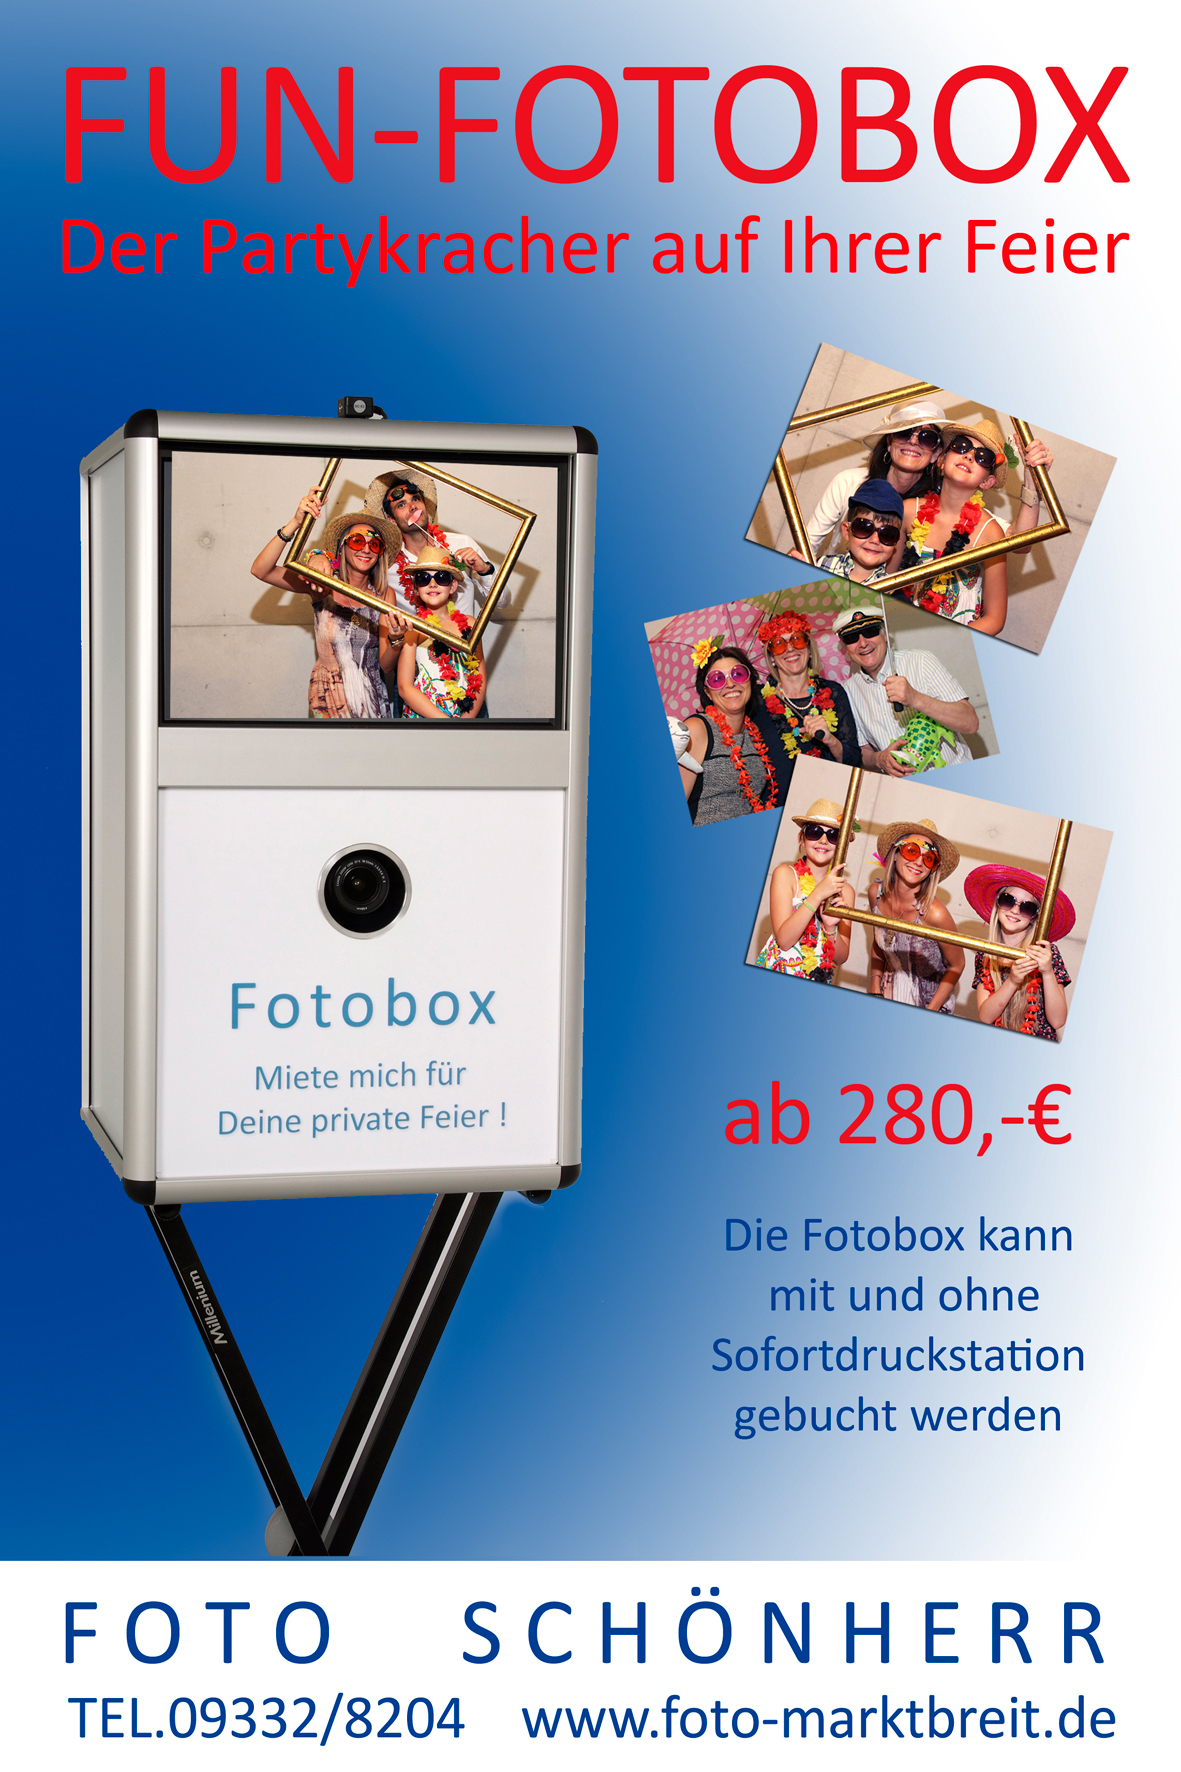 Fun-Fotobox